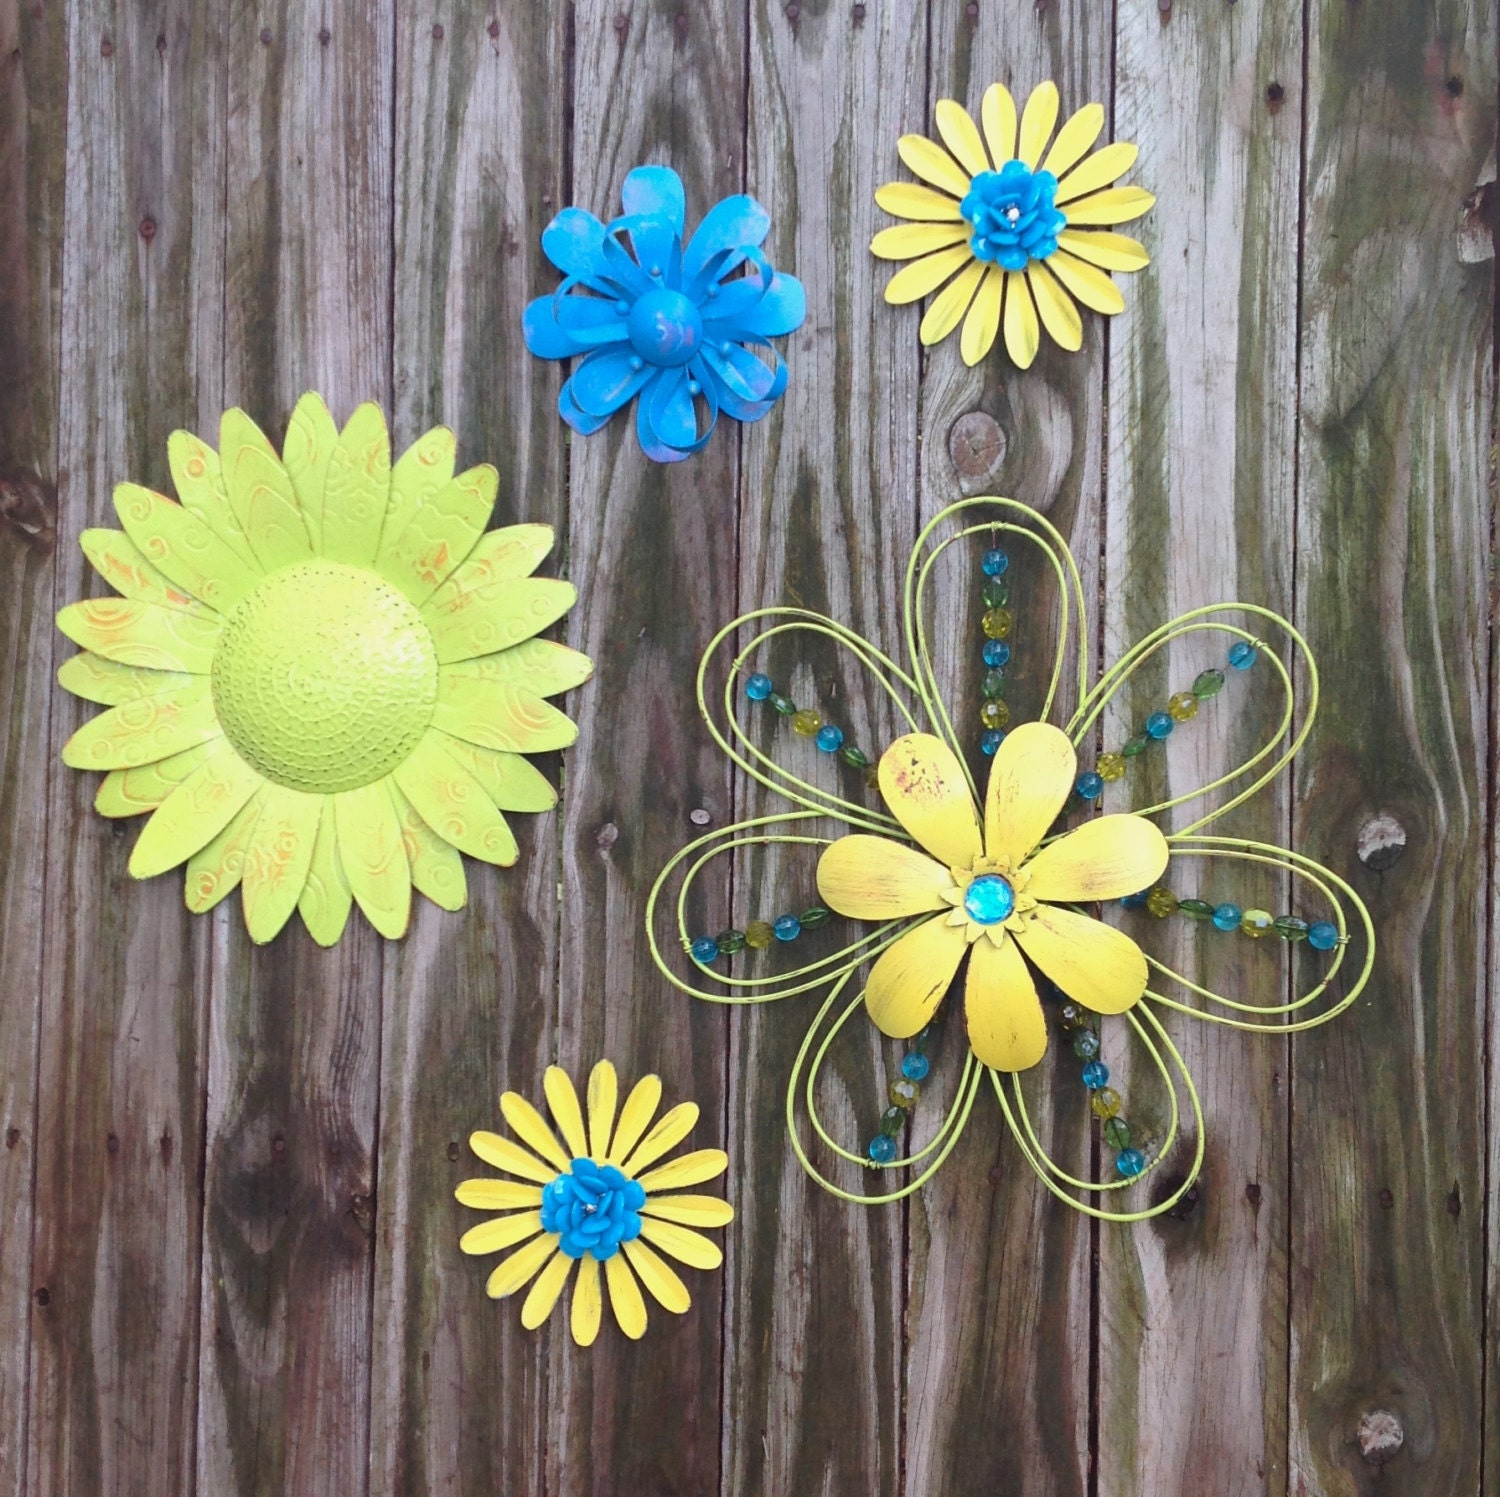 5 lime blue yellow metal fence wall flowers metal yard. Black Bedroom Furniture Sets. Home Design Ideas